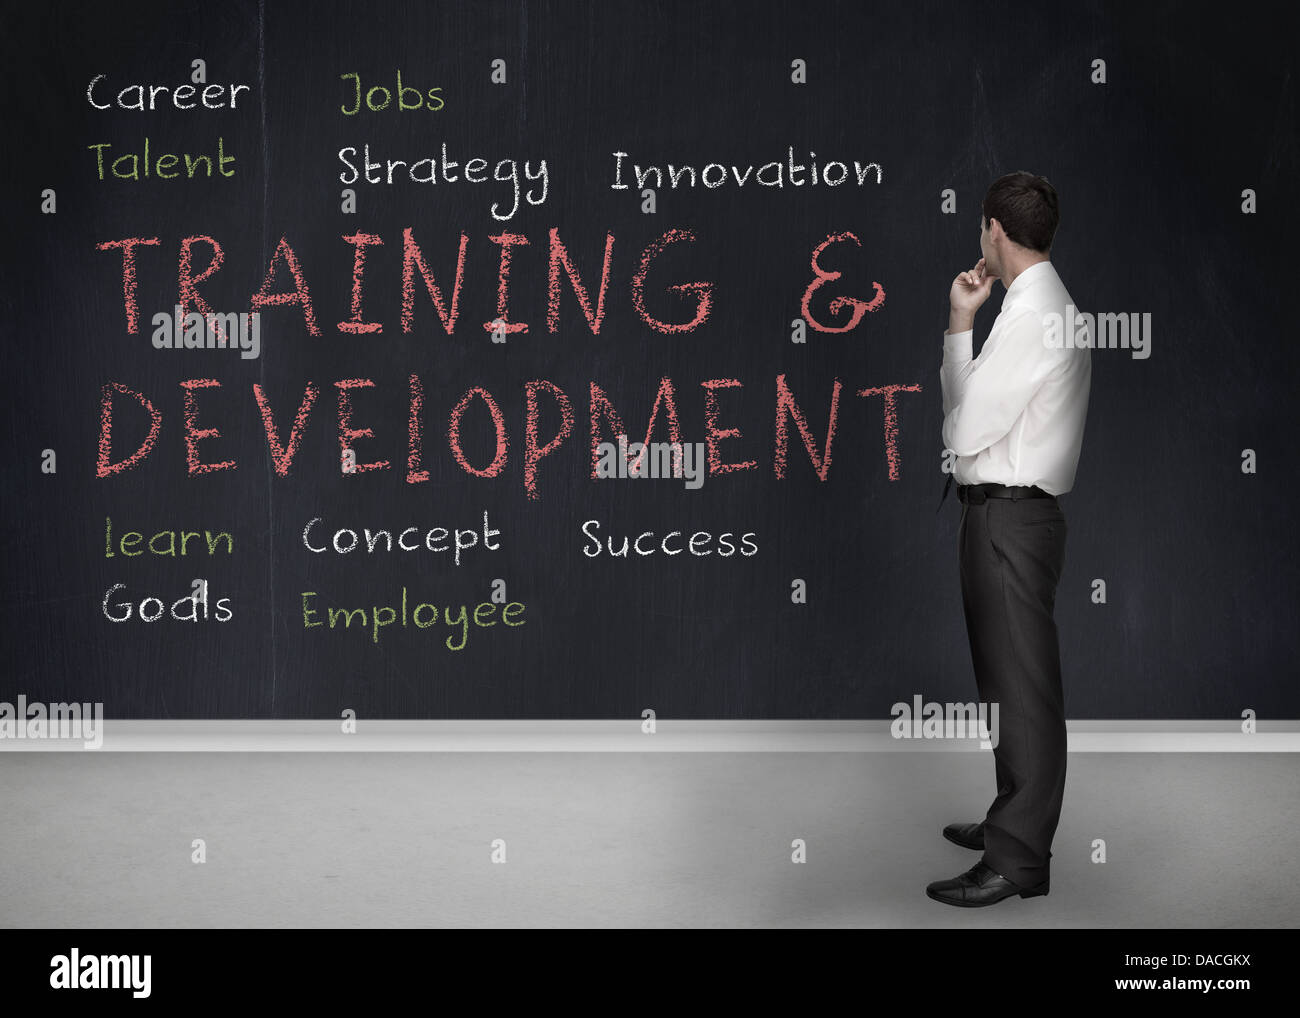 Training and development terms written on a blackboard - Stock Image